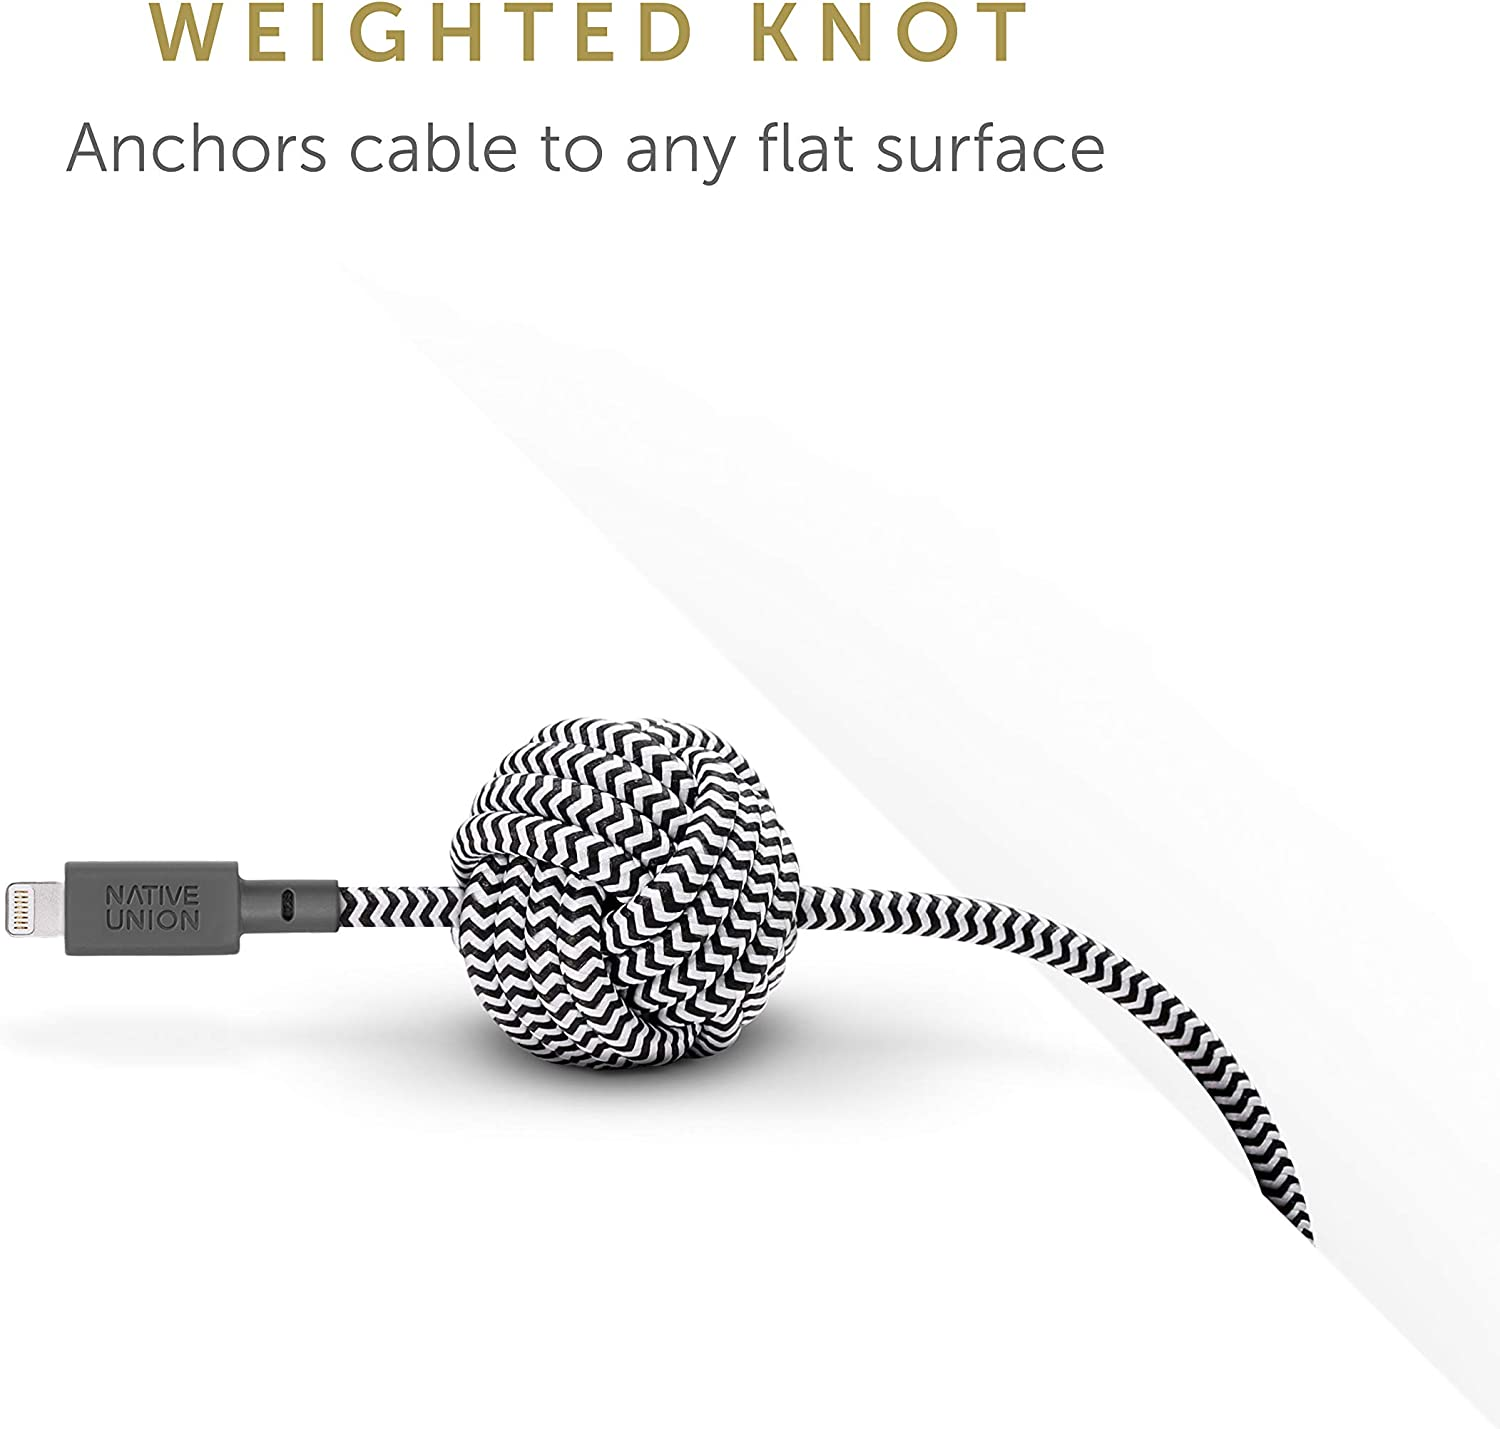 Native Union Night Cable Apple MFi Certified 10ft Ultra-Strong Reinforced Durable Lightning to USB Charging Cable with Weighted Knot for iPhone//iPad Marine